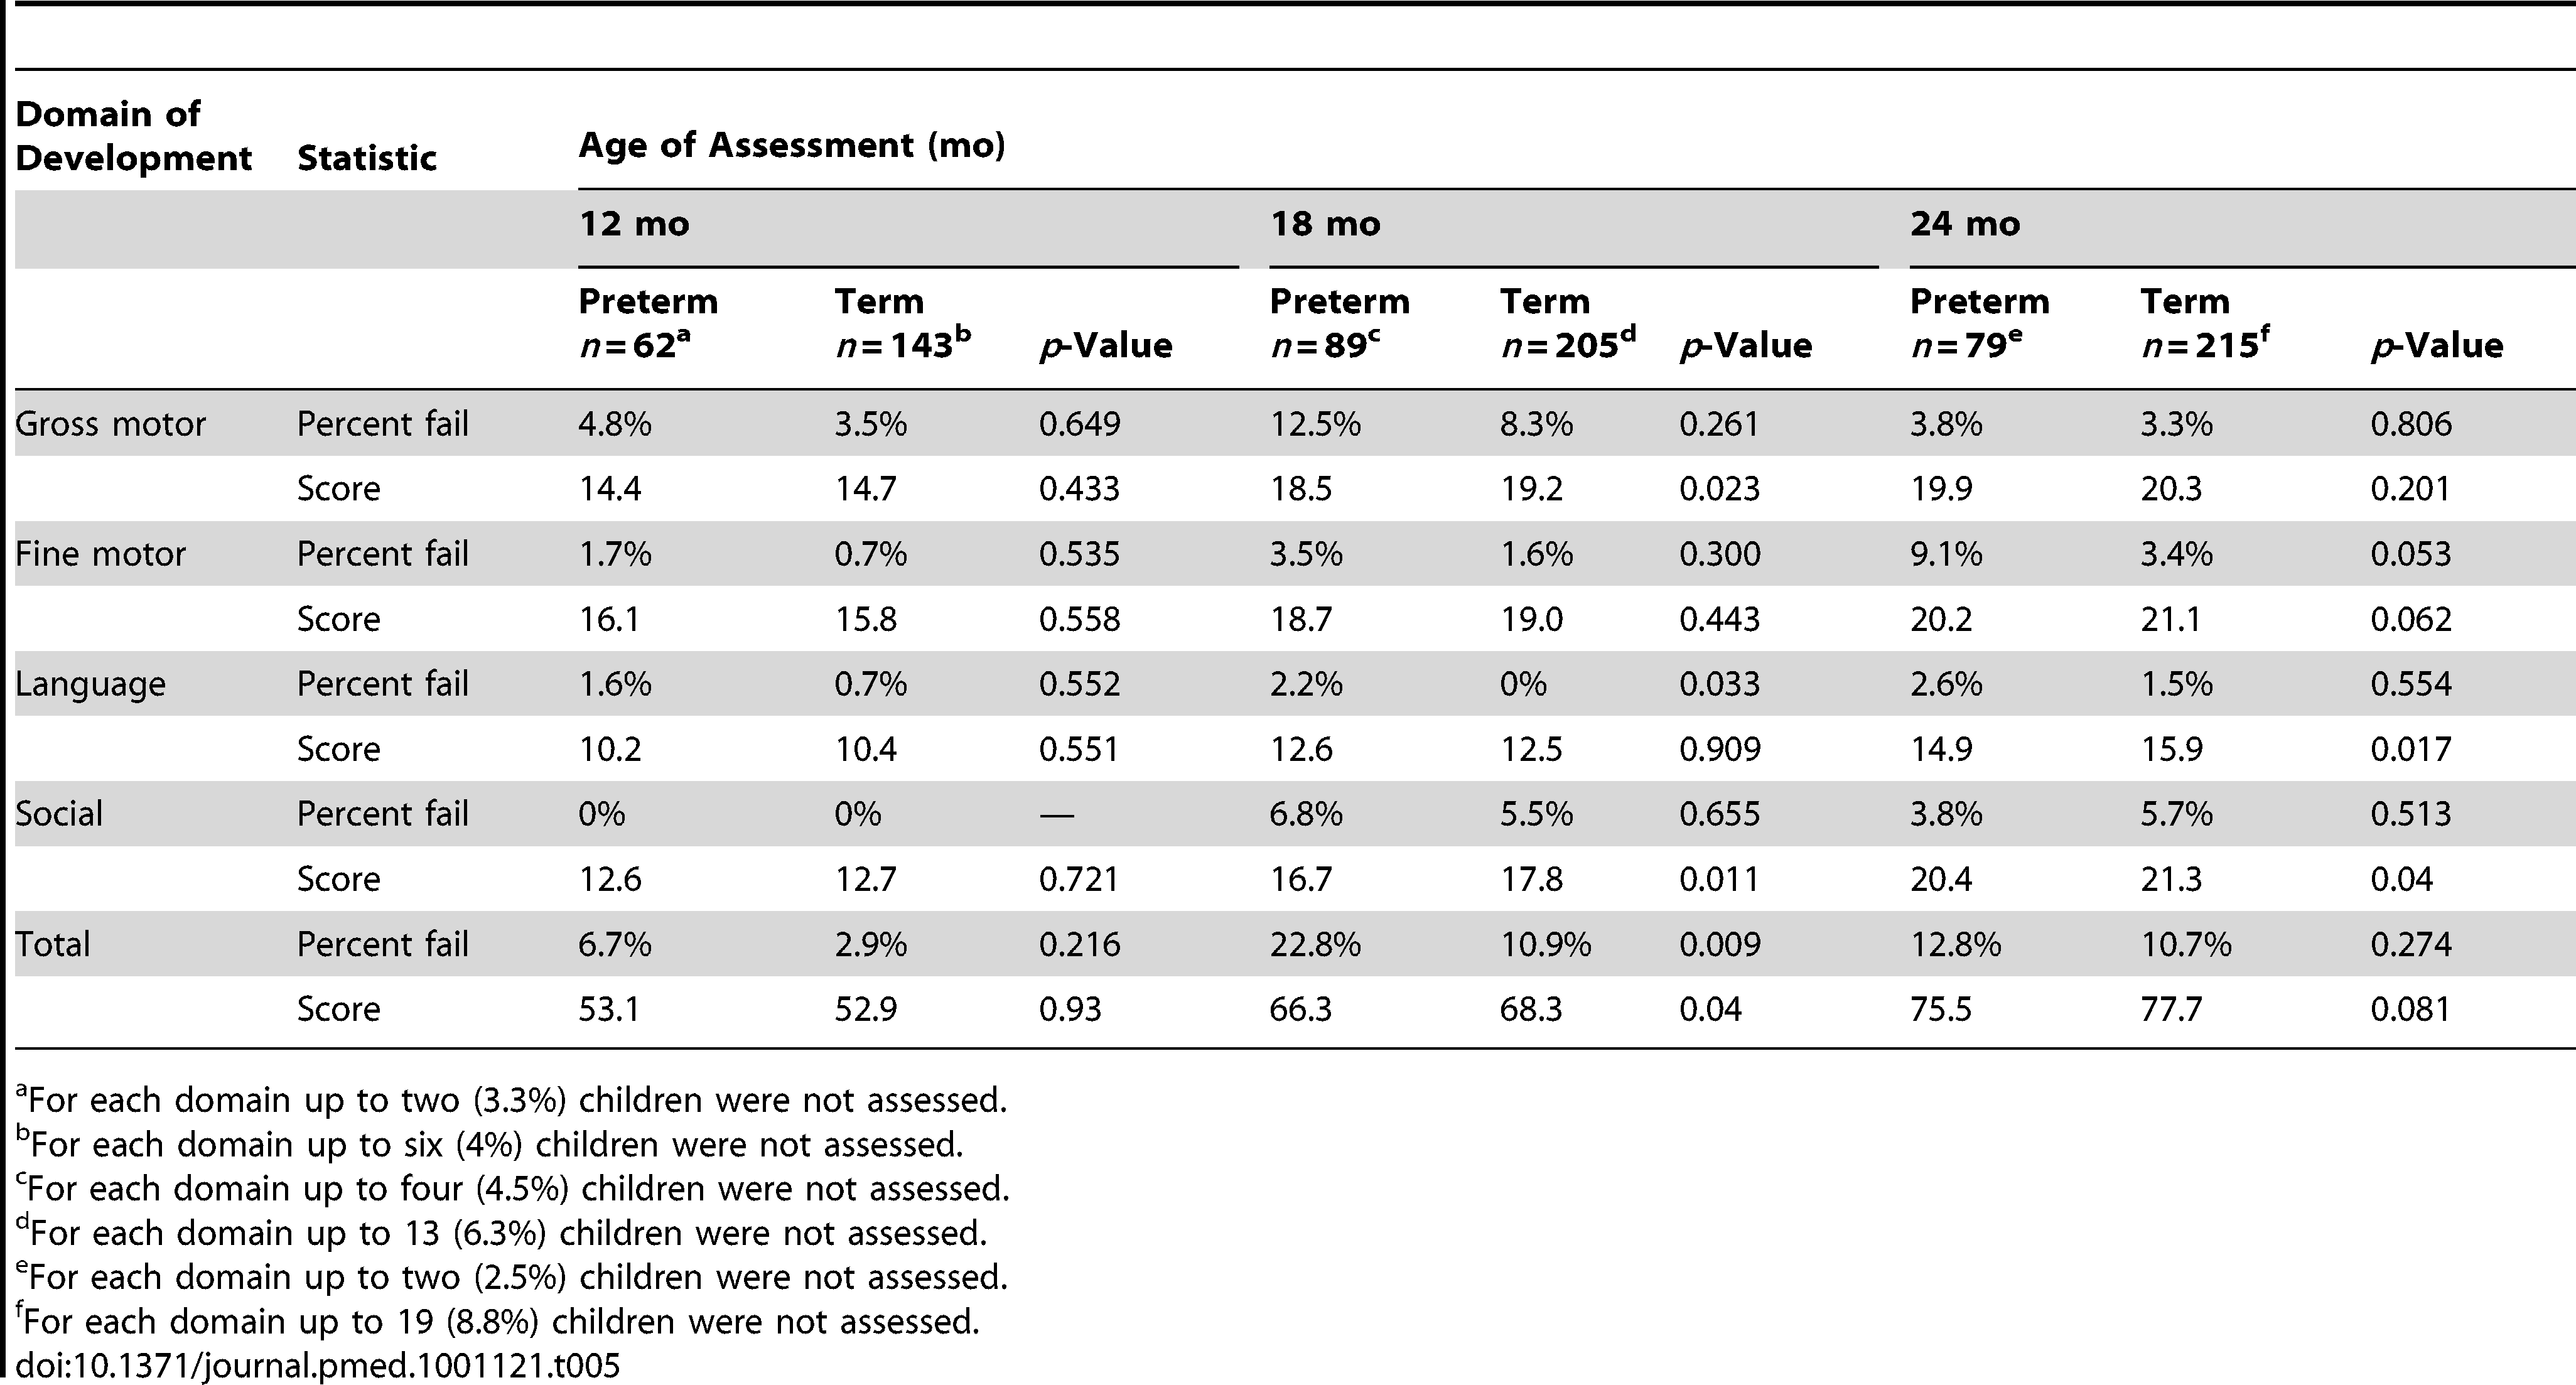 Comparisons of mean MDAT scores and percentage passing/failing for each domain of development, for preterm and term babies, by age at assessment.